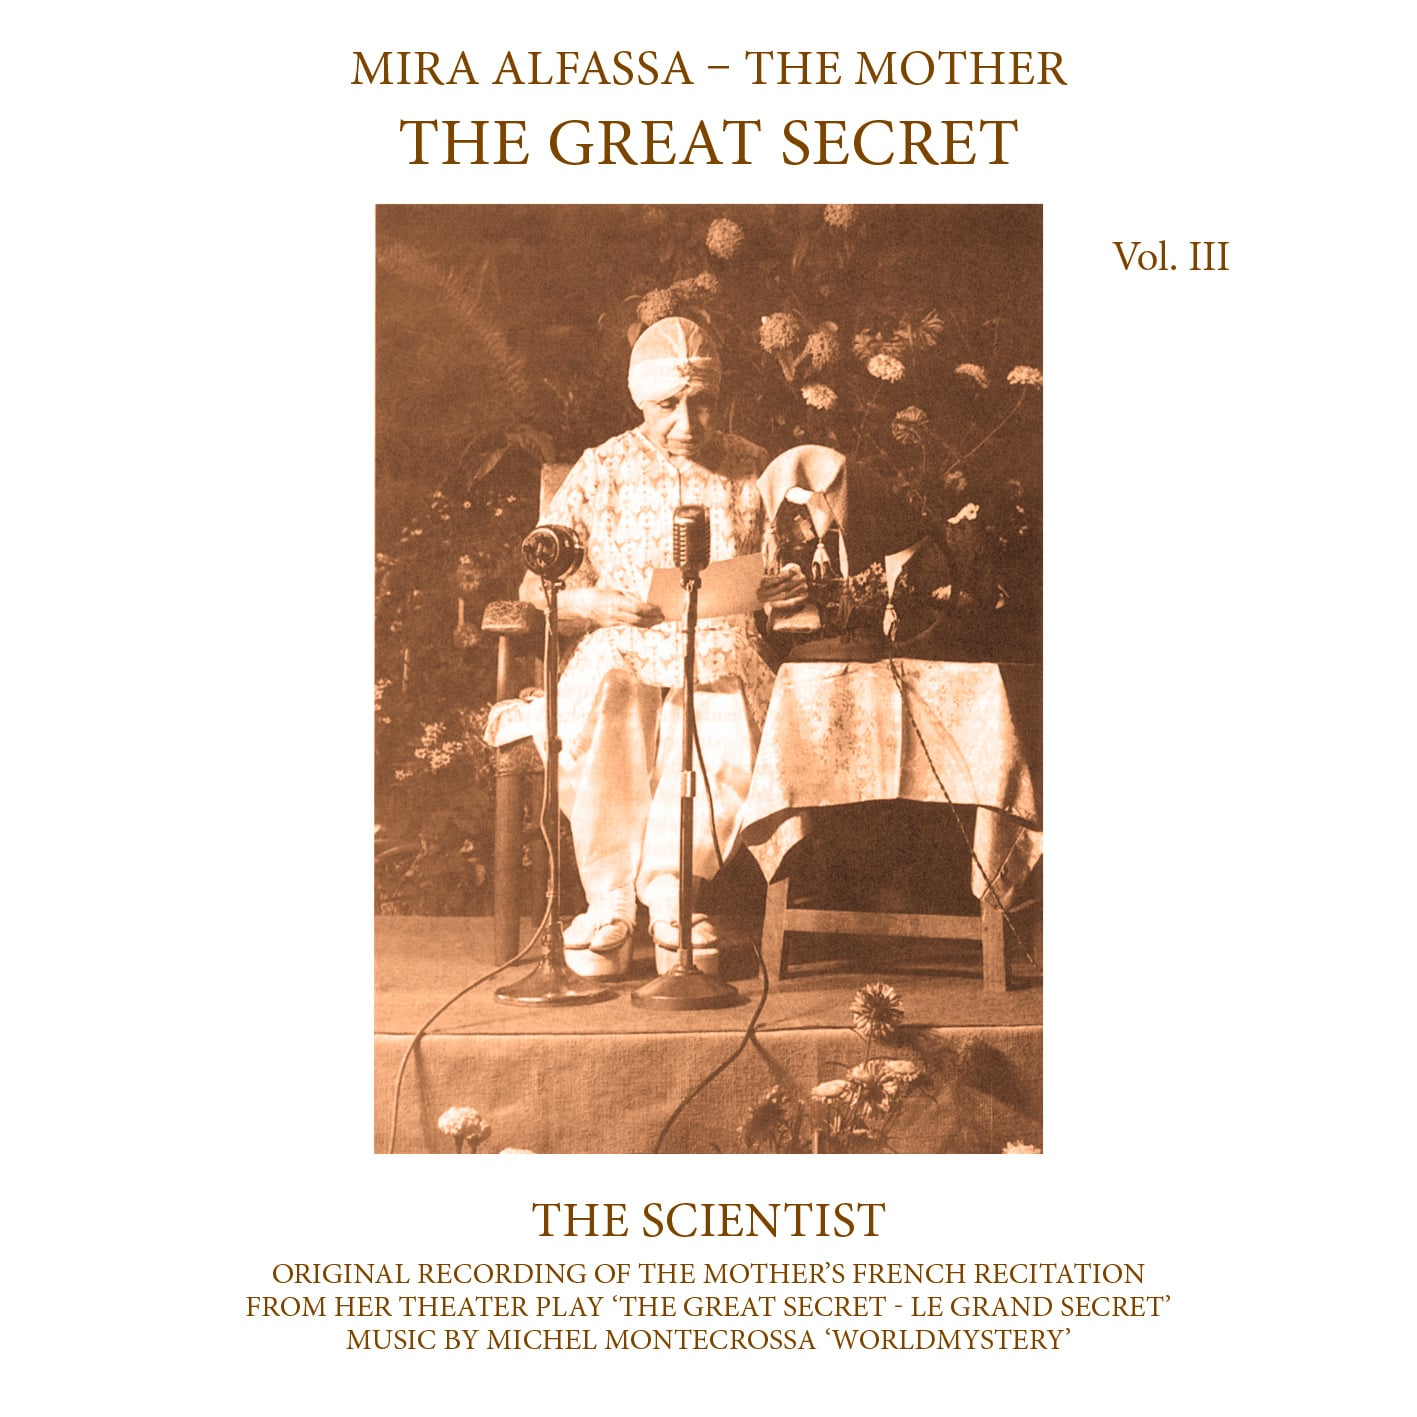 The Great Secret, Vol 5: The Scientist